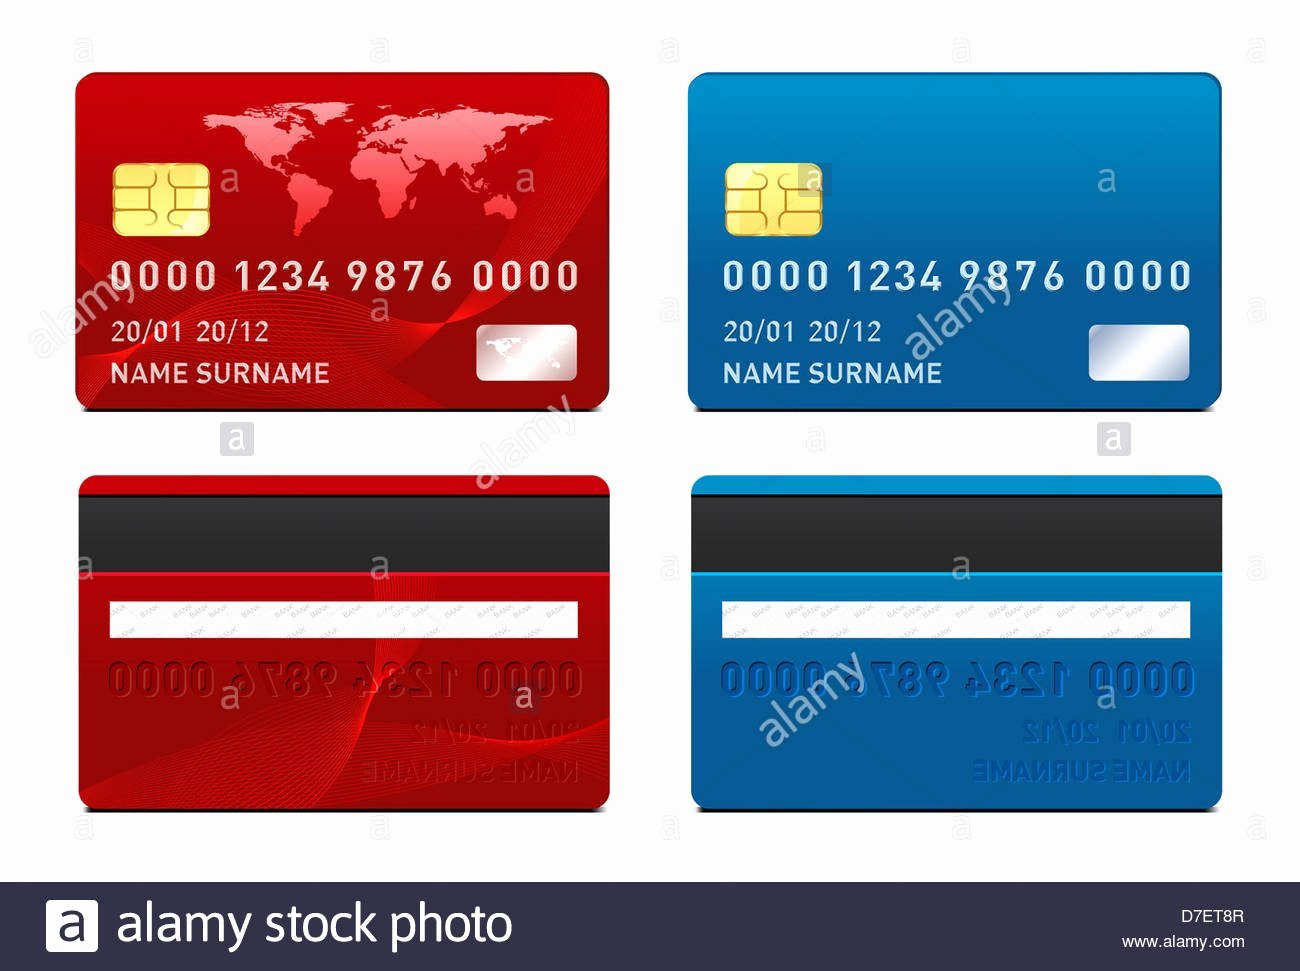 Blank Credit Card Template Luxury Credit Card Template Front and Back Side Stock